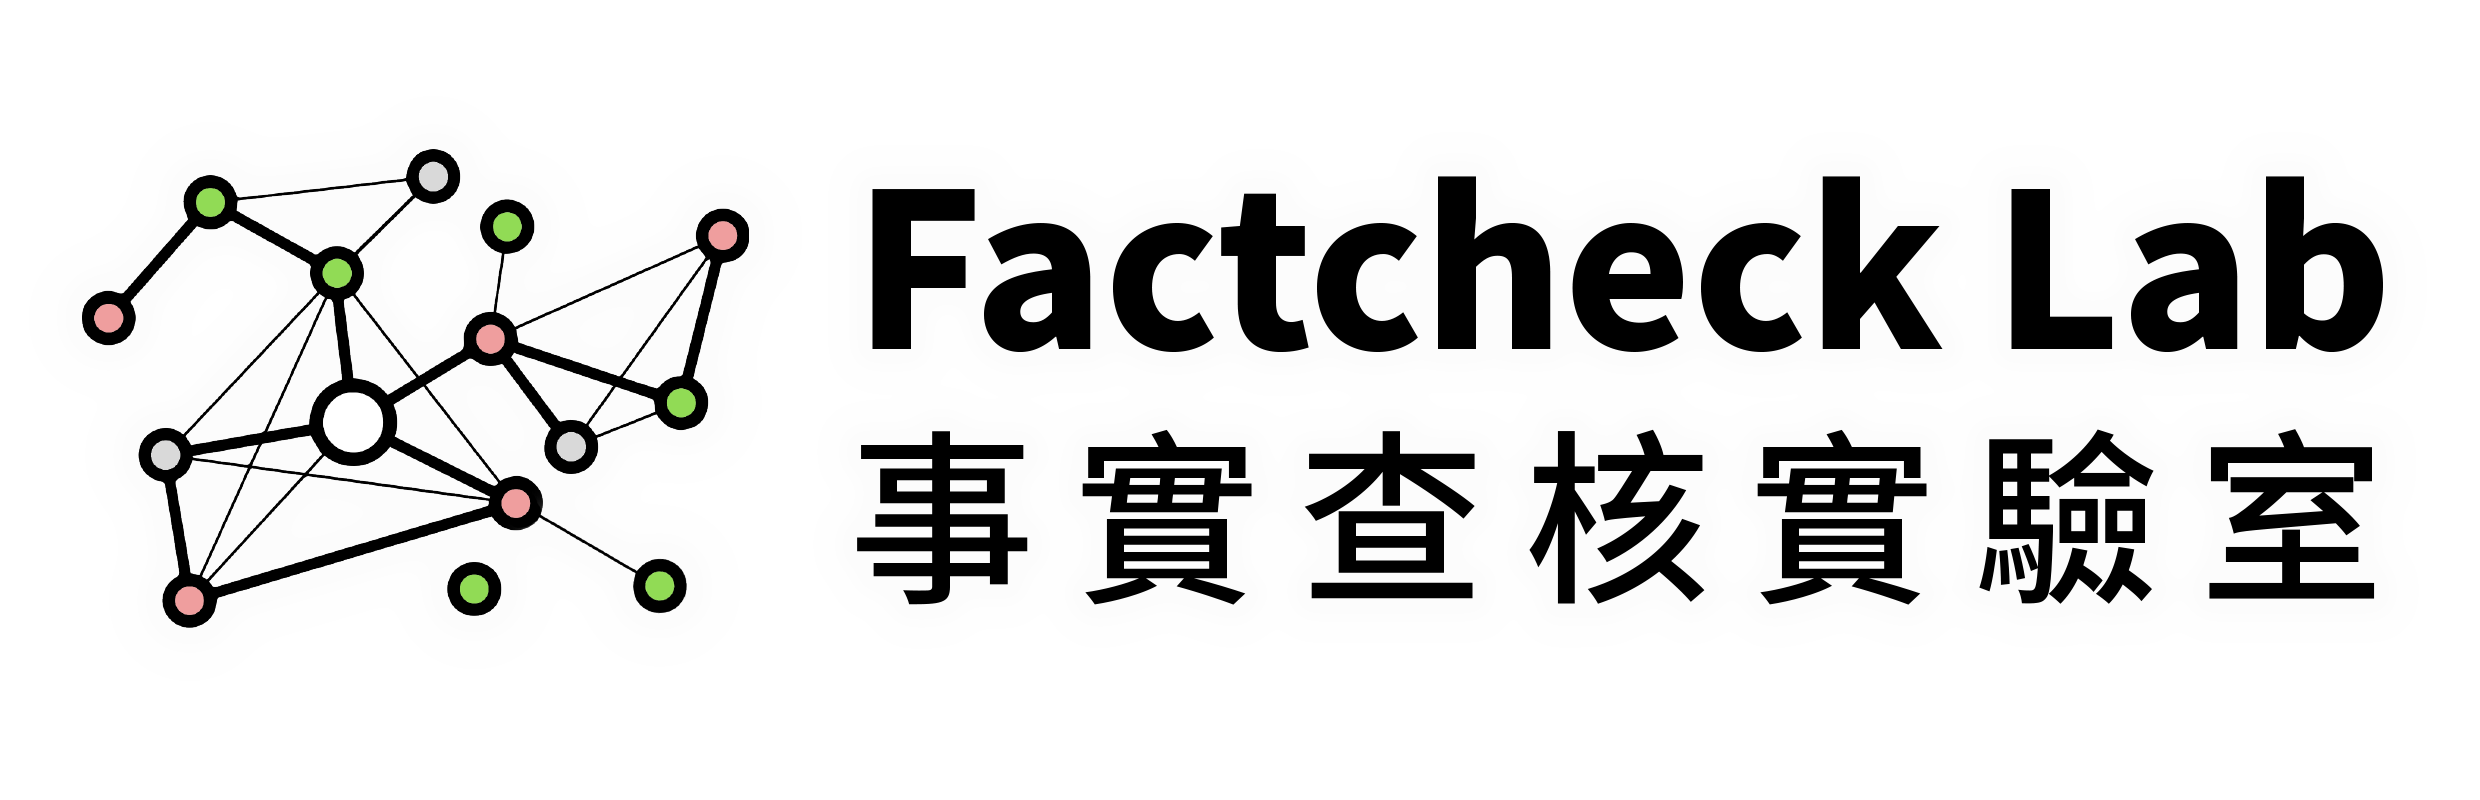 Factcheck Lab